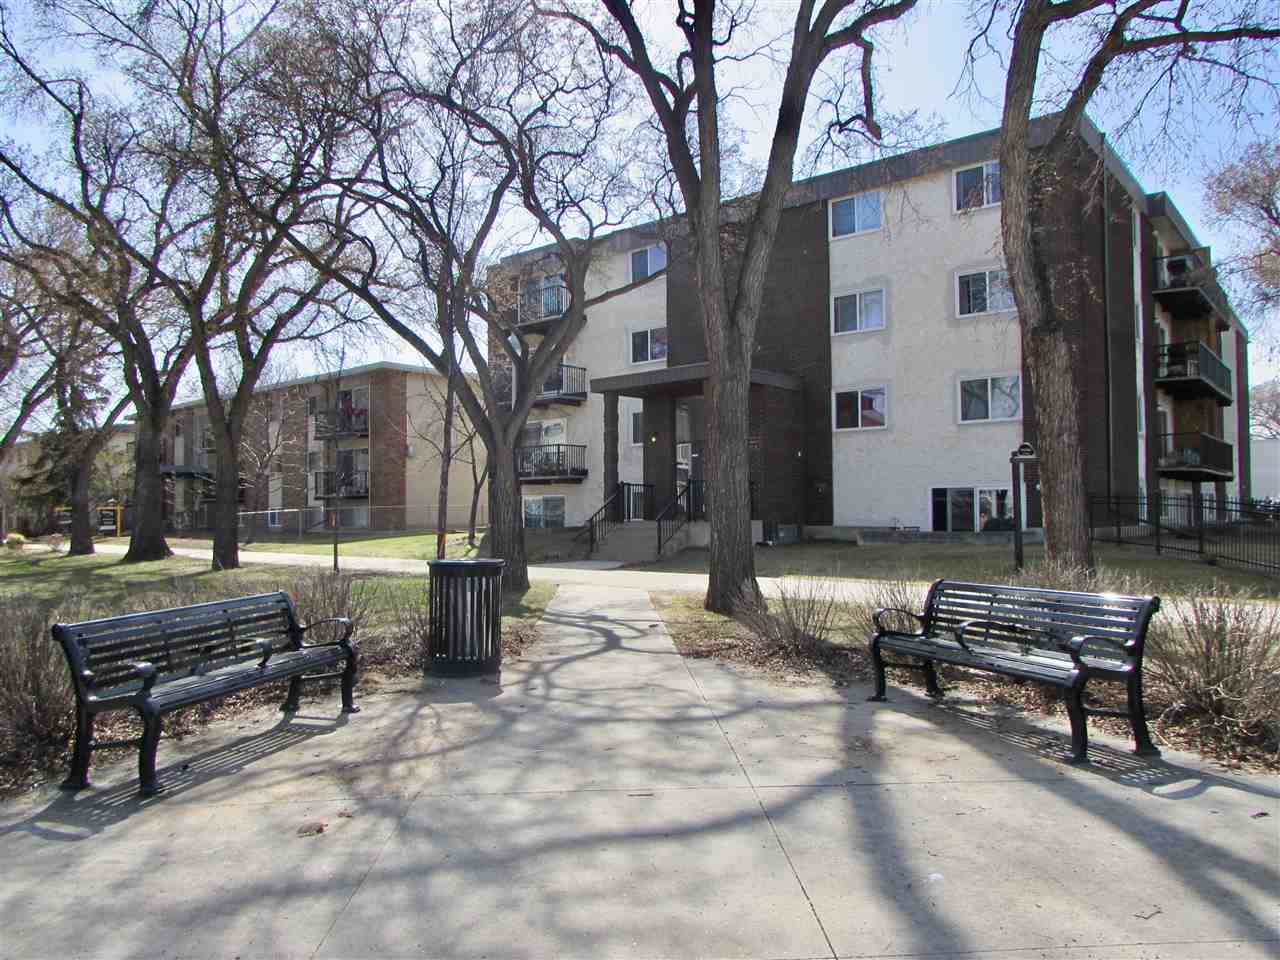 104 10740 105 Street NW, 1 bed, 1 bath, at $119,900